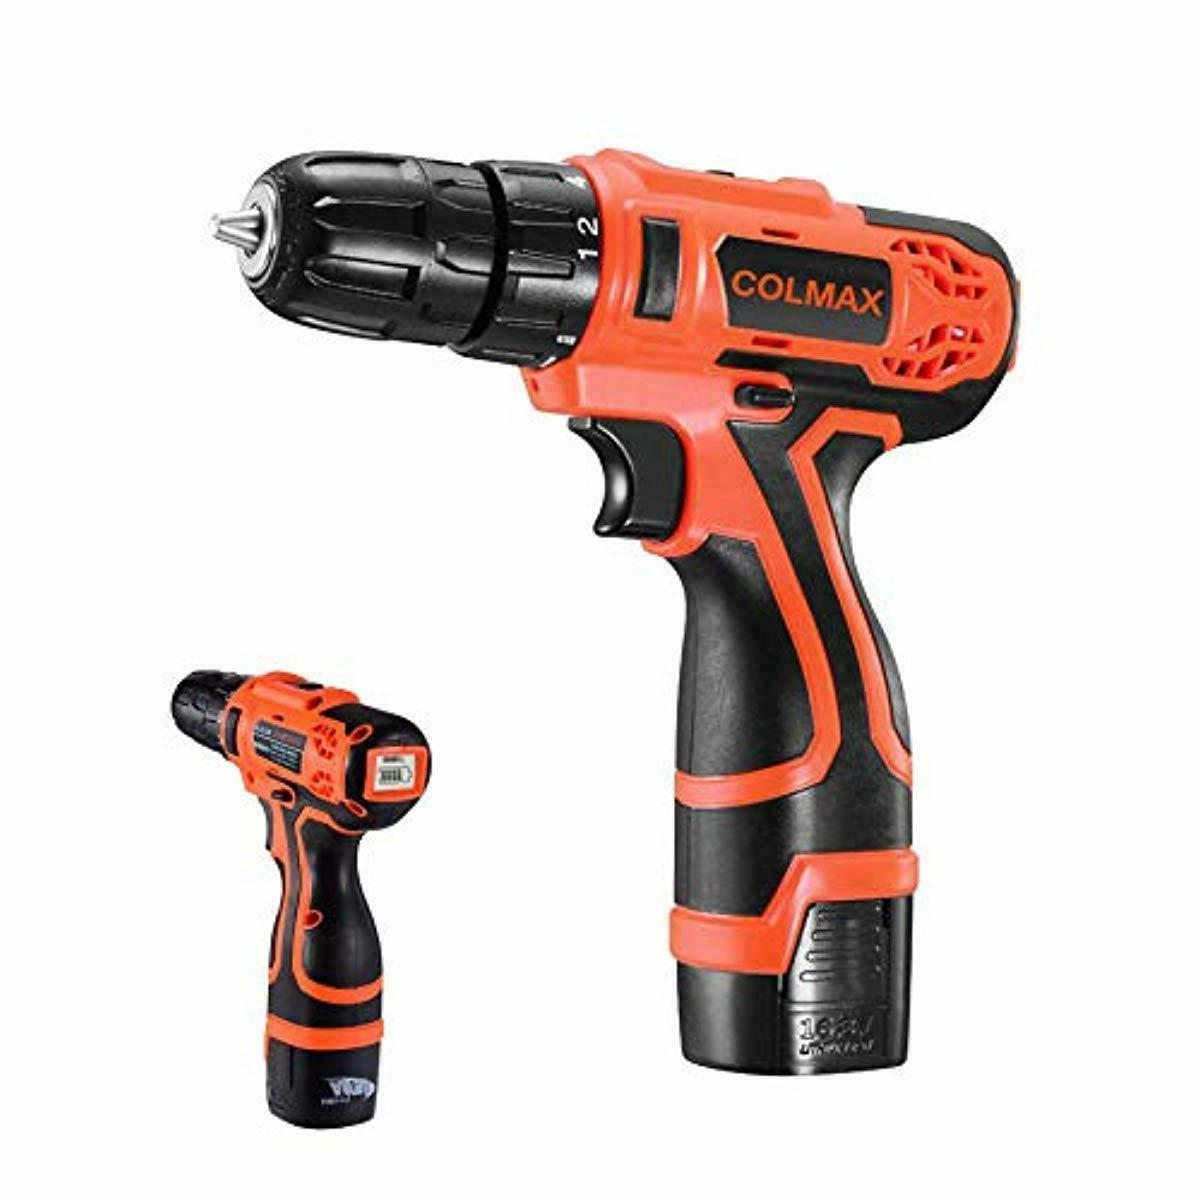 COLMAX Tool With 16.8V and Household